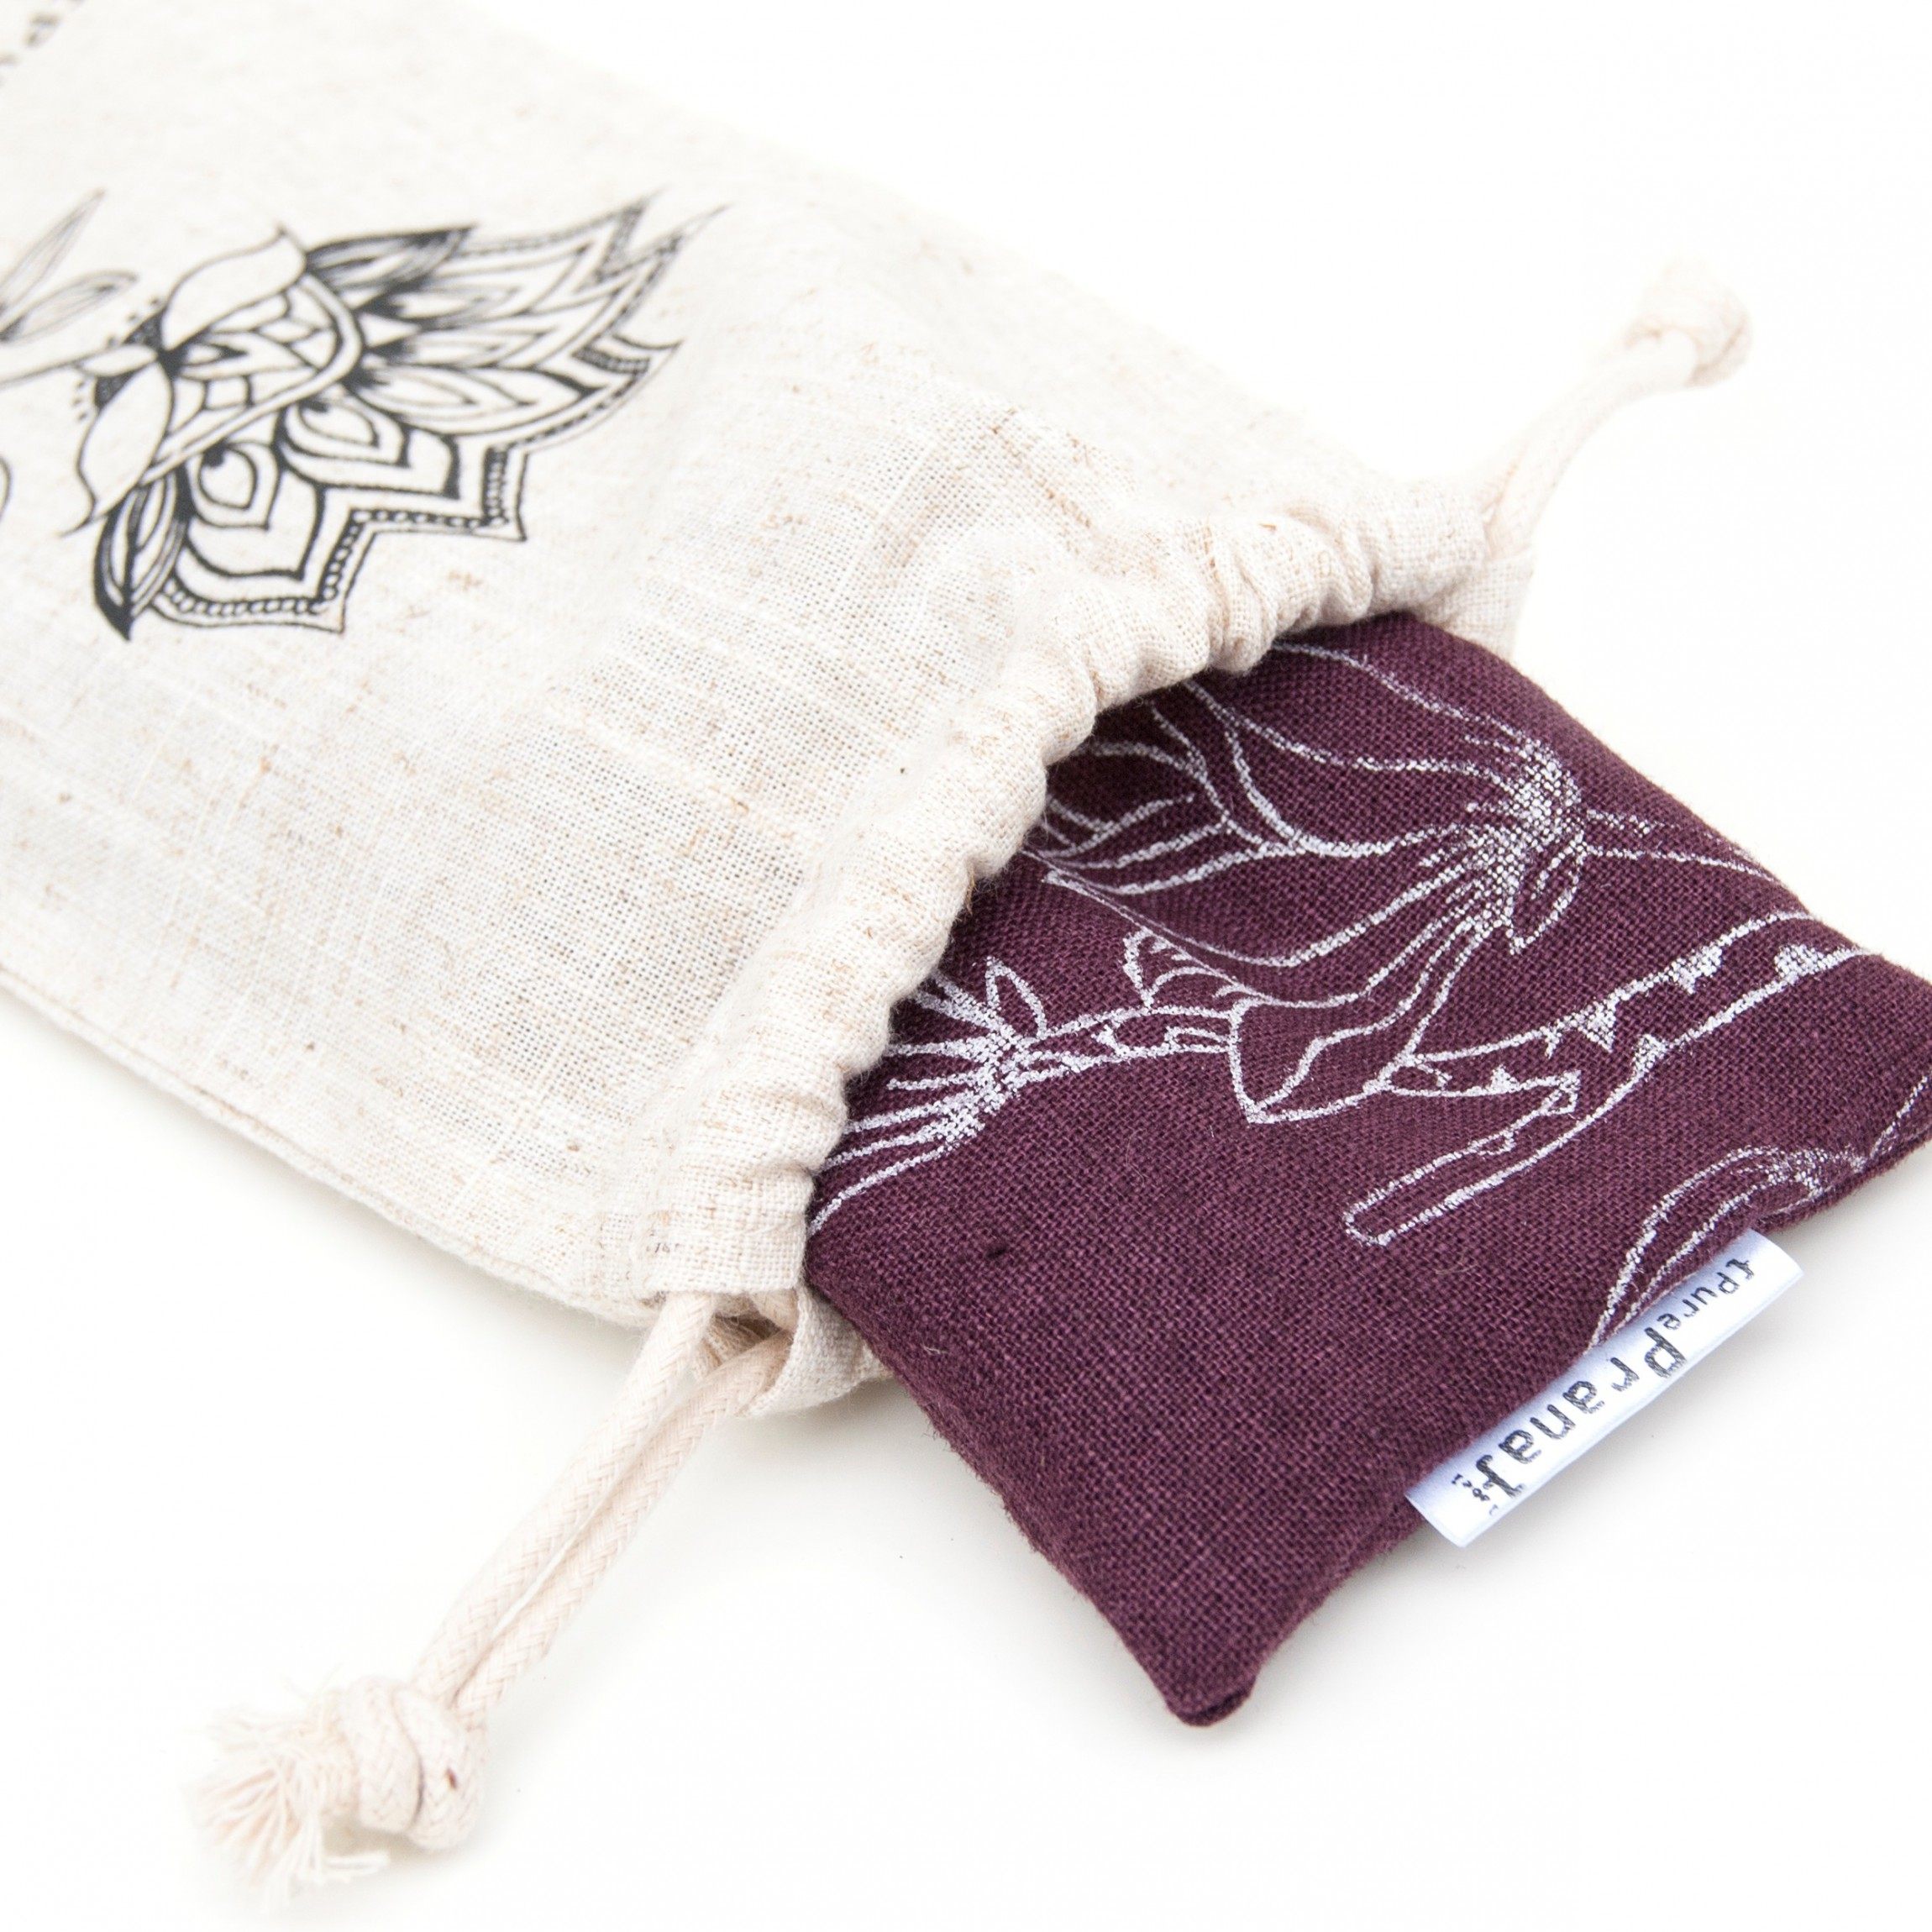 Eye pillow Magnolia in pouch by Pure Prana Label